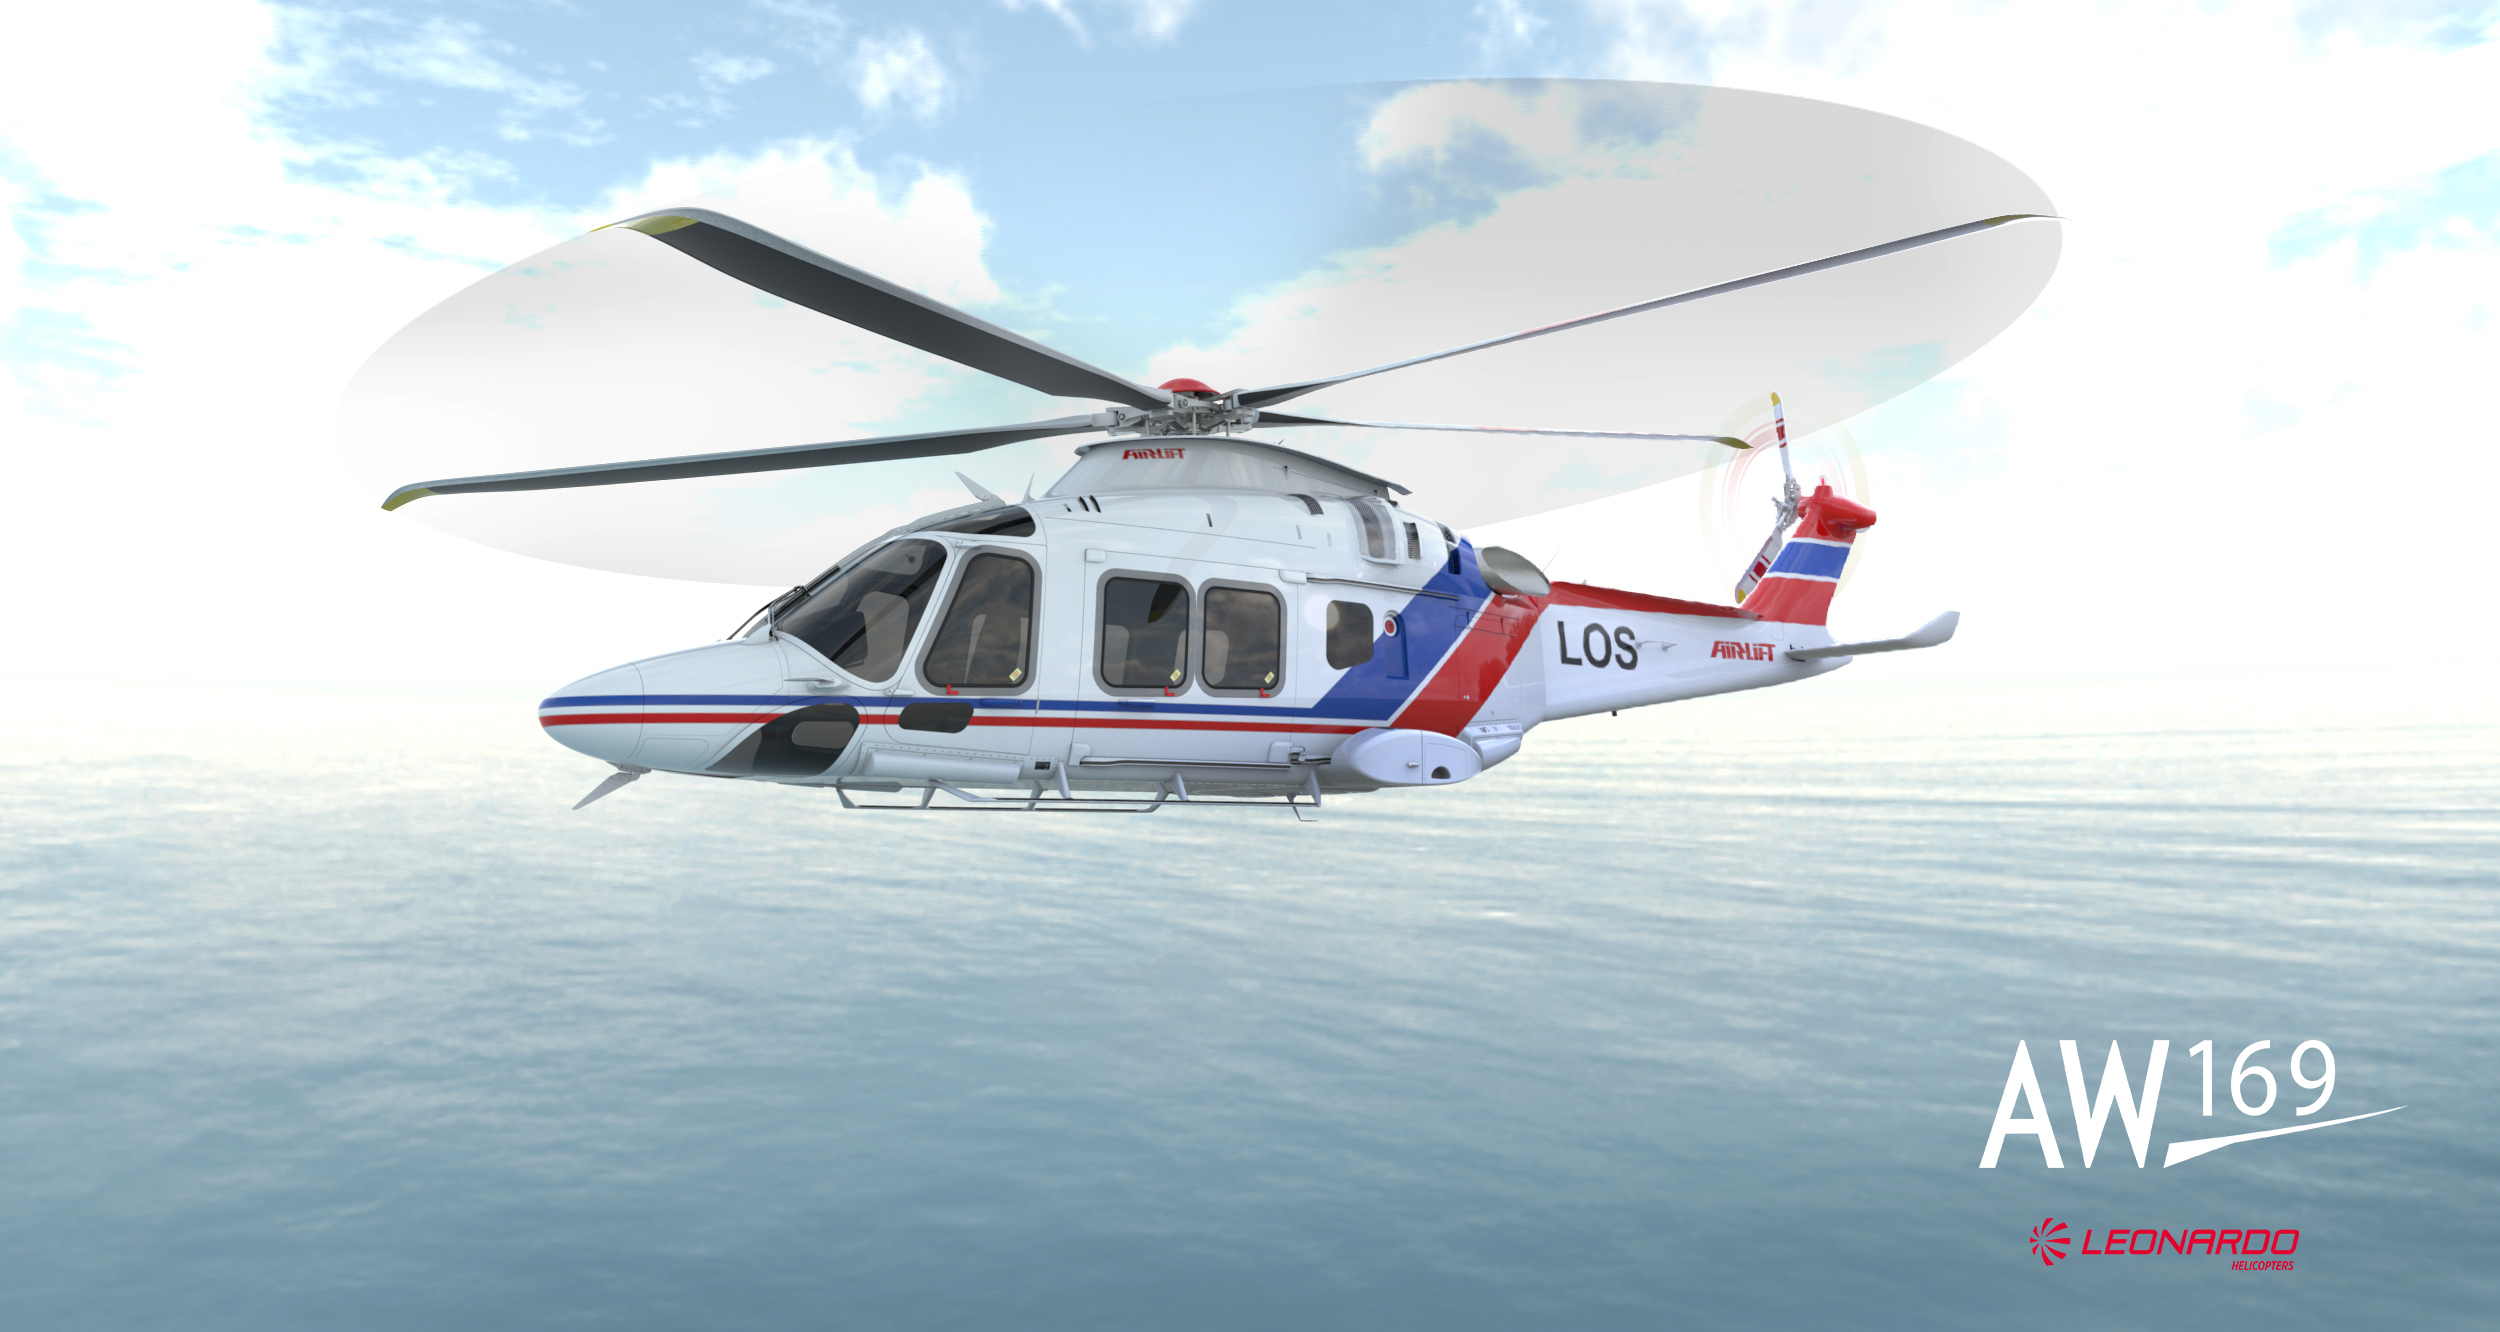 Airlift AS will add 3 AW169 to its fleet.